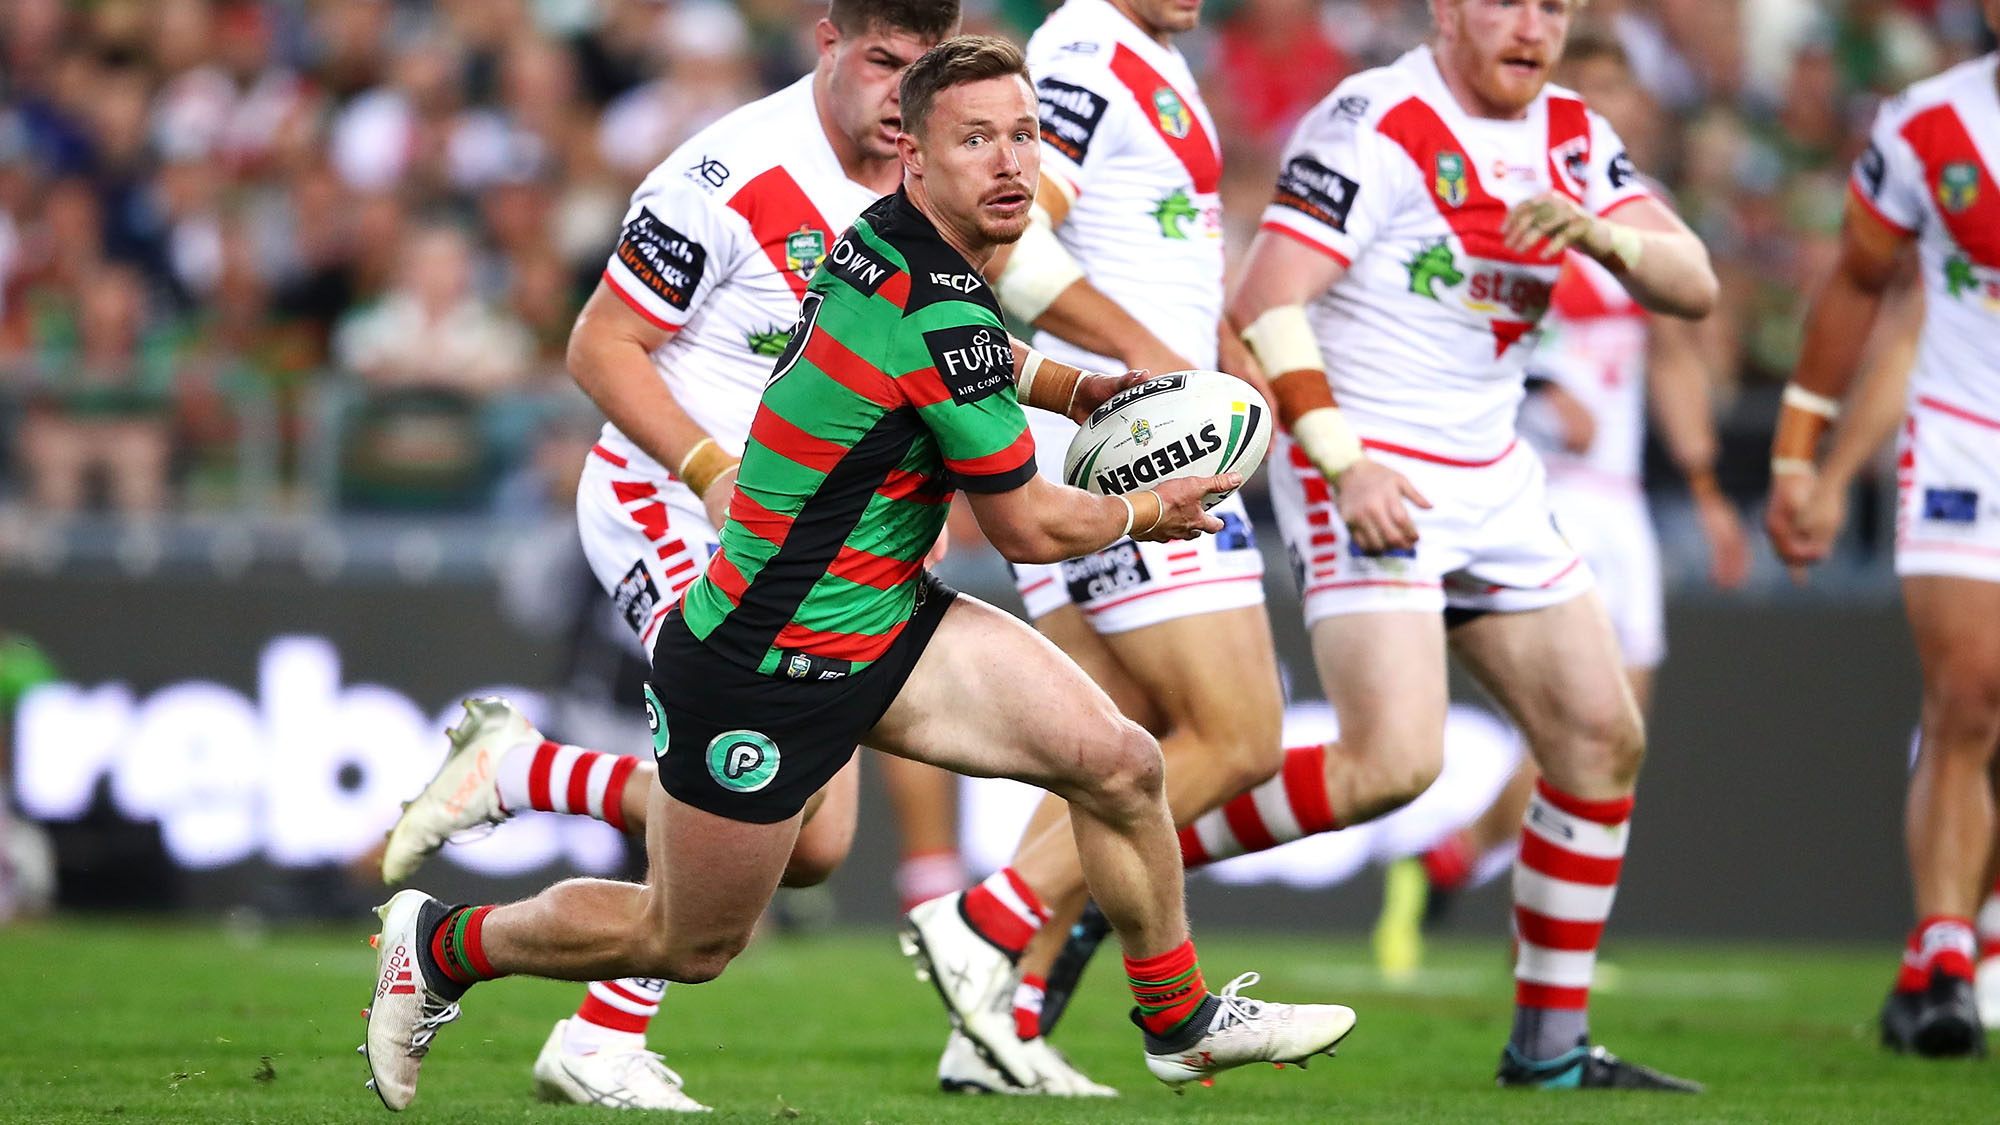 South Sydney Rabbitohs star Damien Cook being hunted by three rival clubs, reports